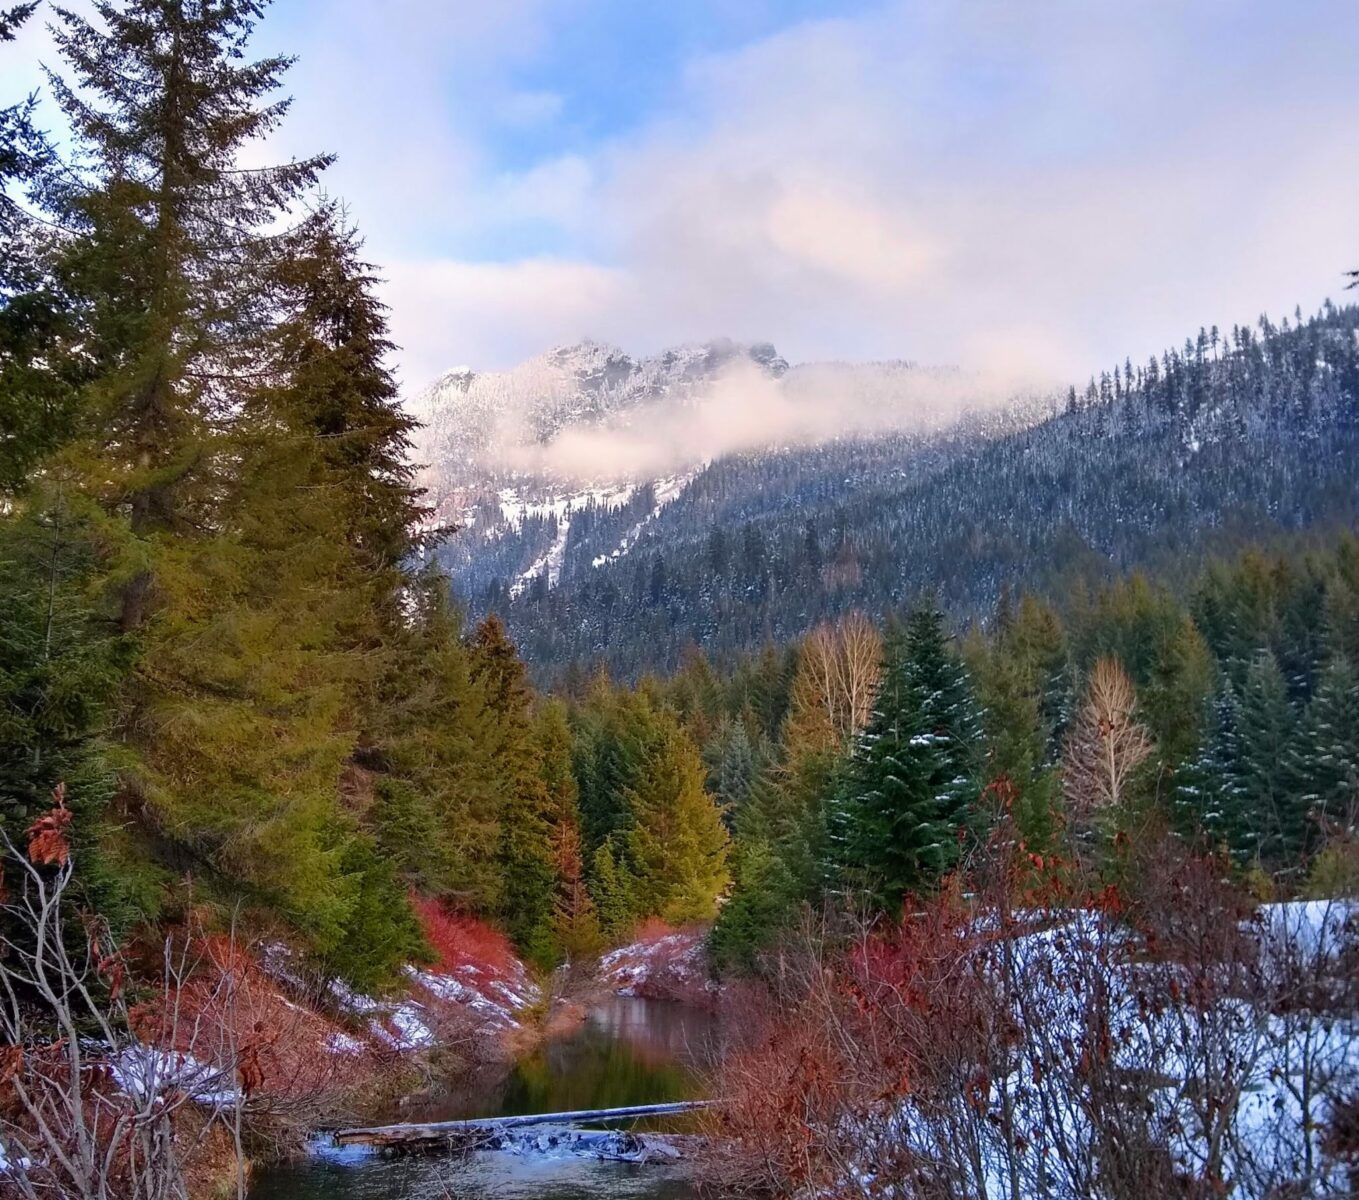 A wonderful fall hike from Seattle (and all year!) Gold Creek winds through evergreen trees and near high snow covered mountains.